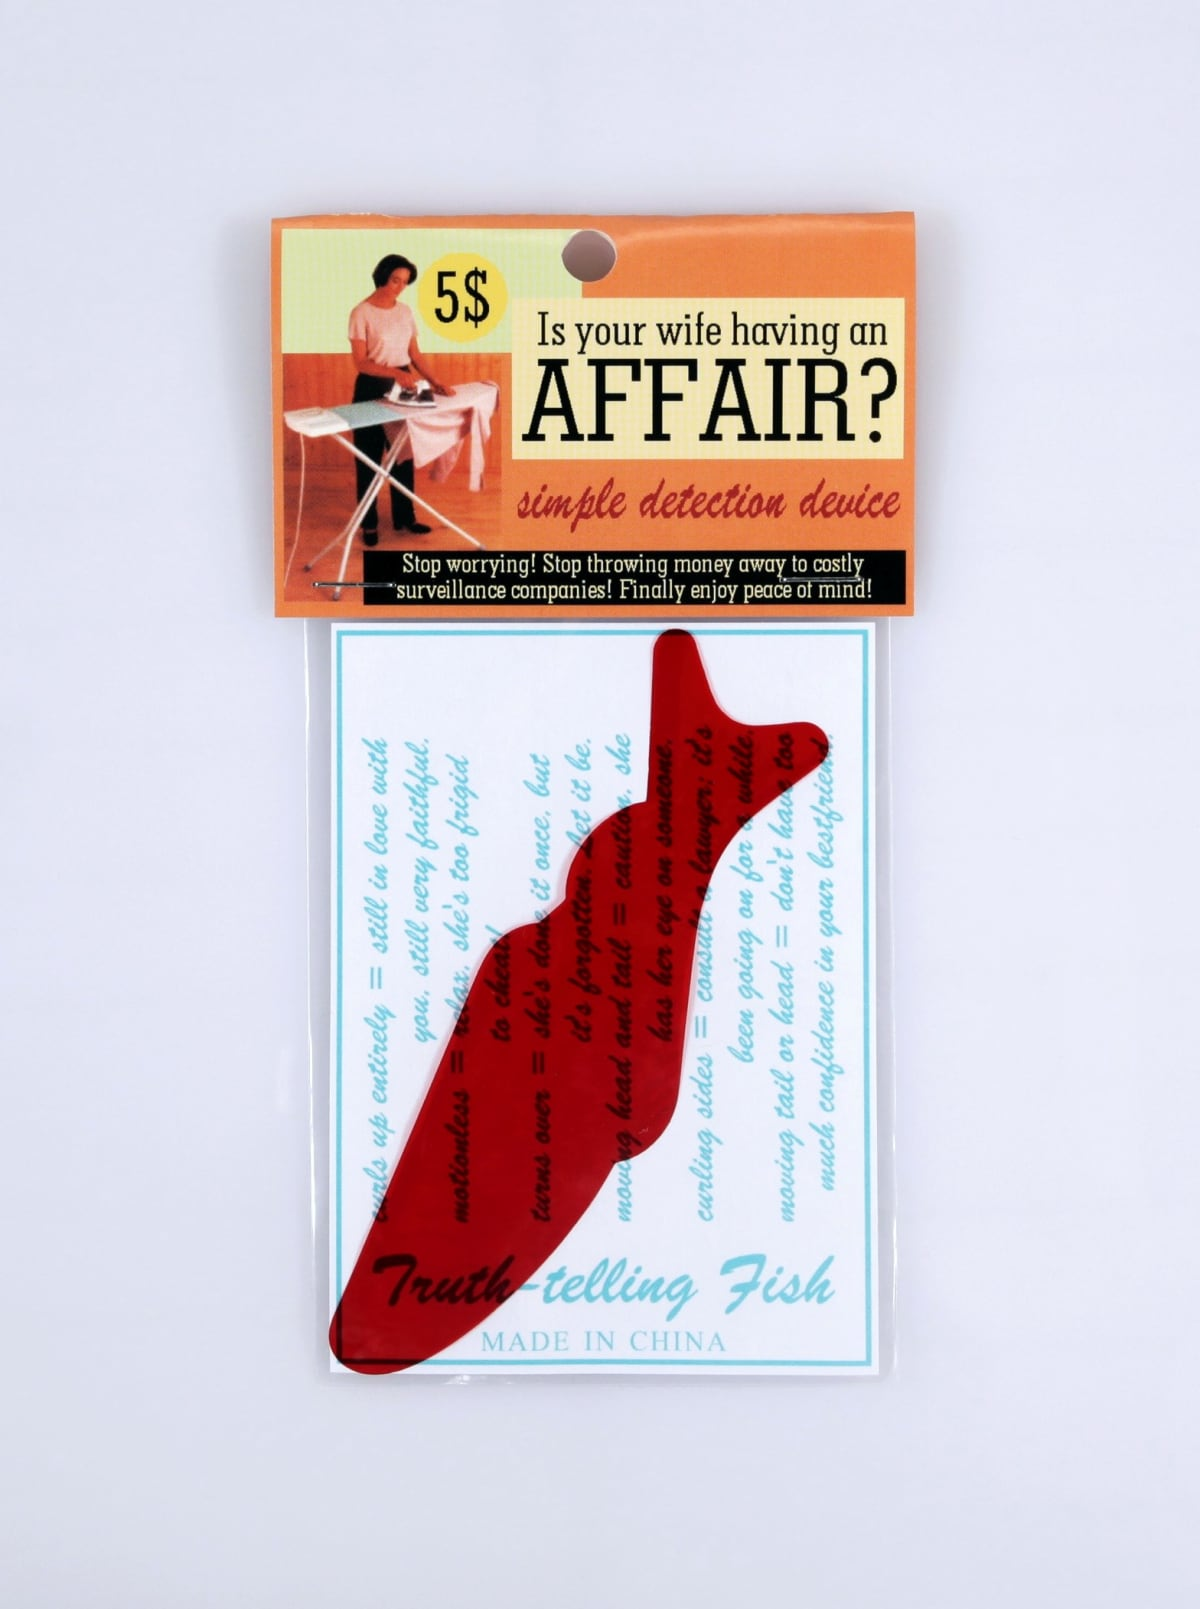 Is your wife having an affair?